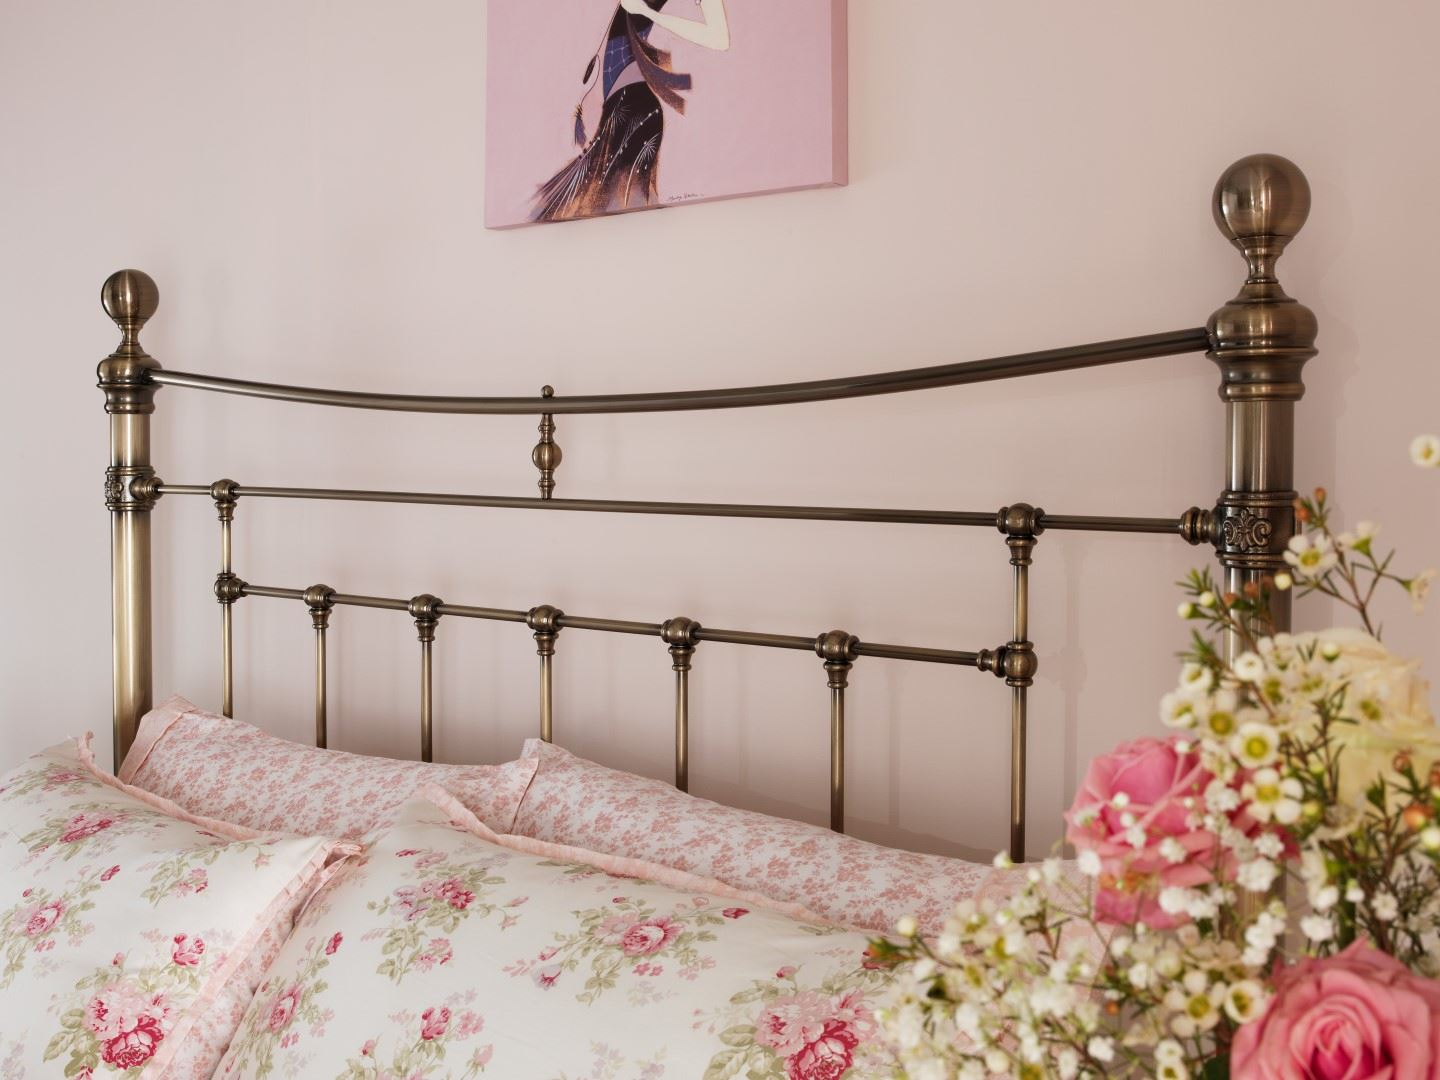 5ft king size metal headboard antique brass victorian style superb quality 5060444252309. Black Bedroom Furniture Sets. Home Design Ideas